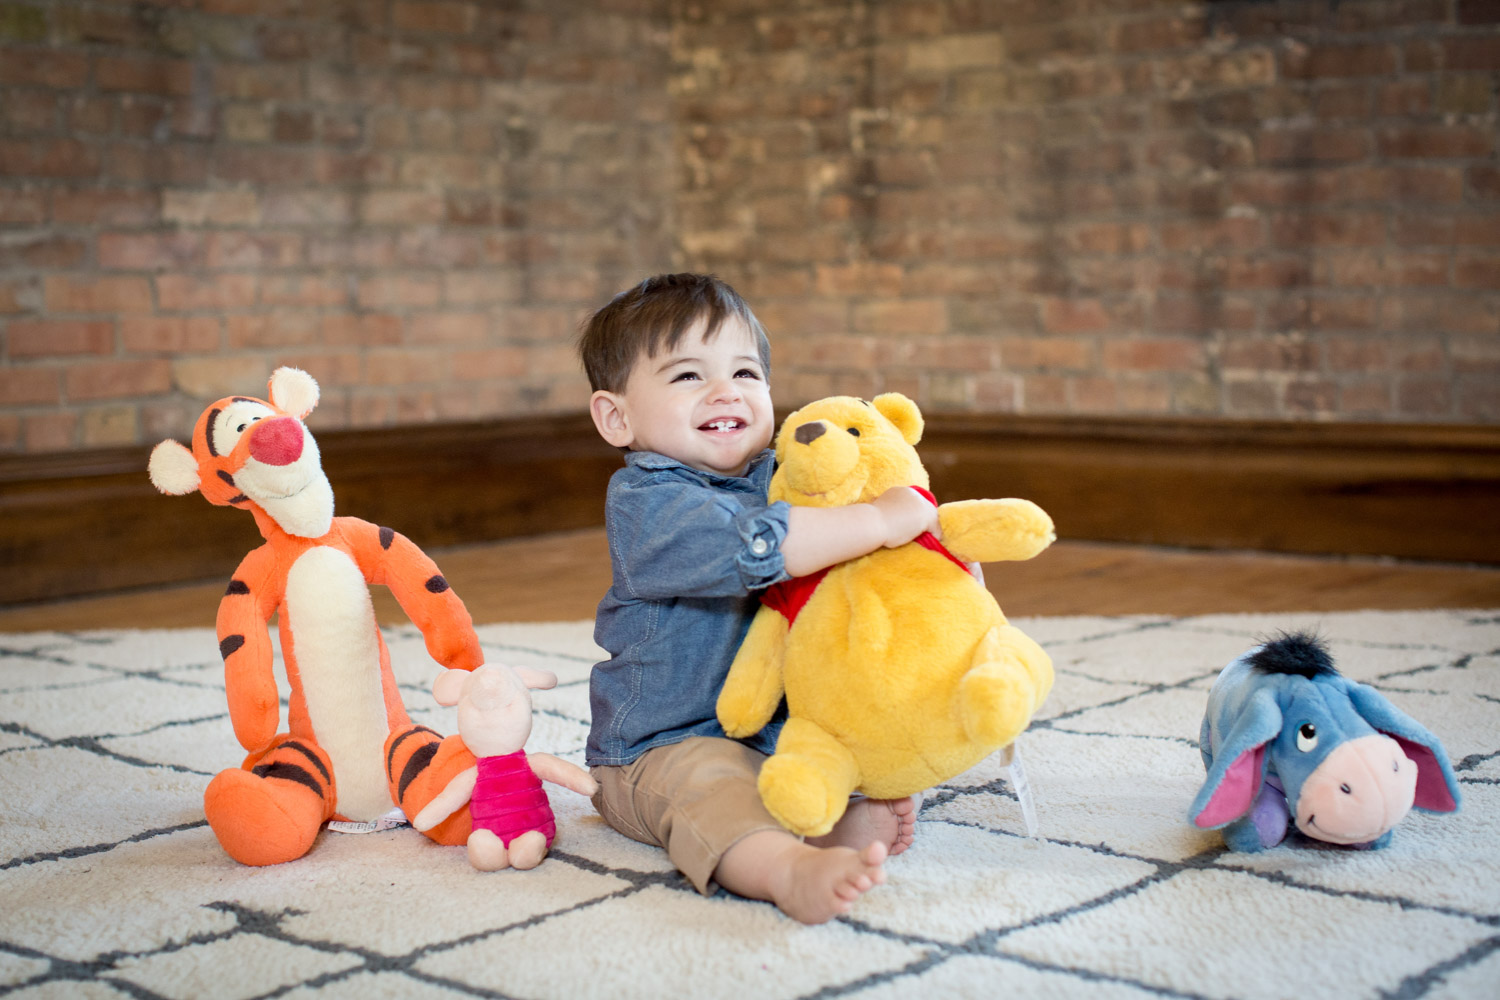 02-cornerstone-studios-portrait-session-baby-boy-one-whinnie-the-pooh-love-mahonen-photography.jpg